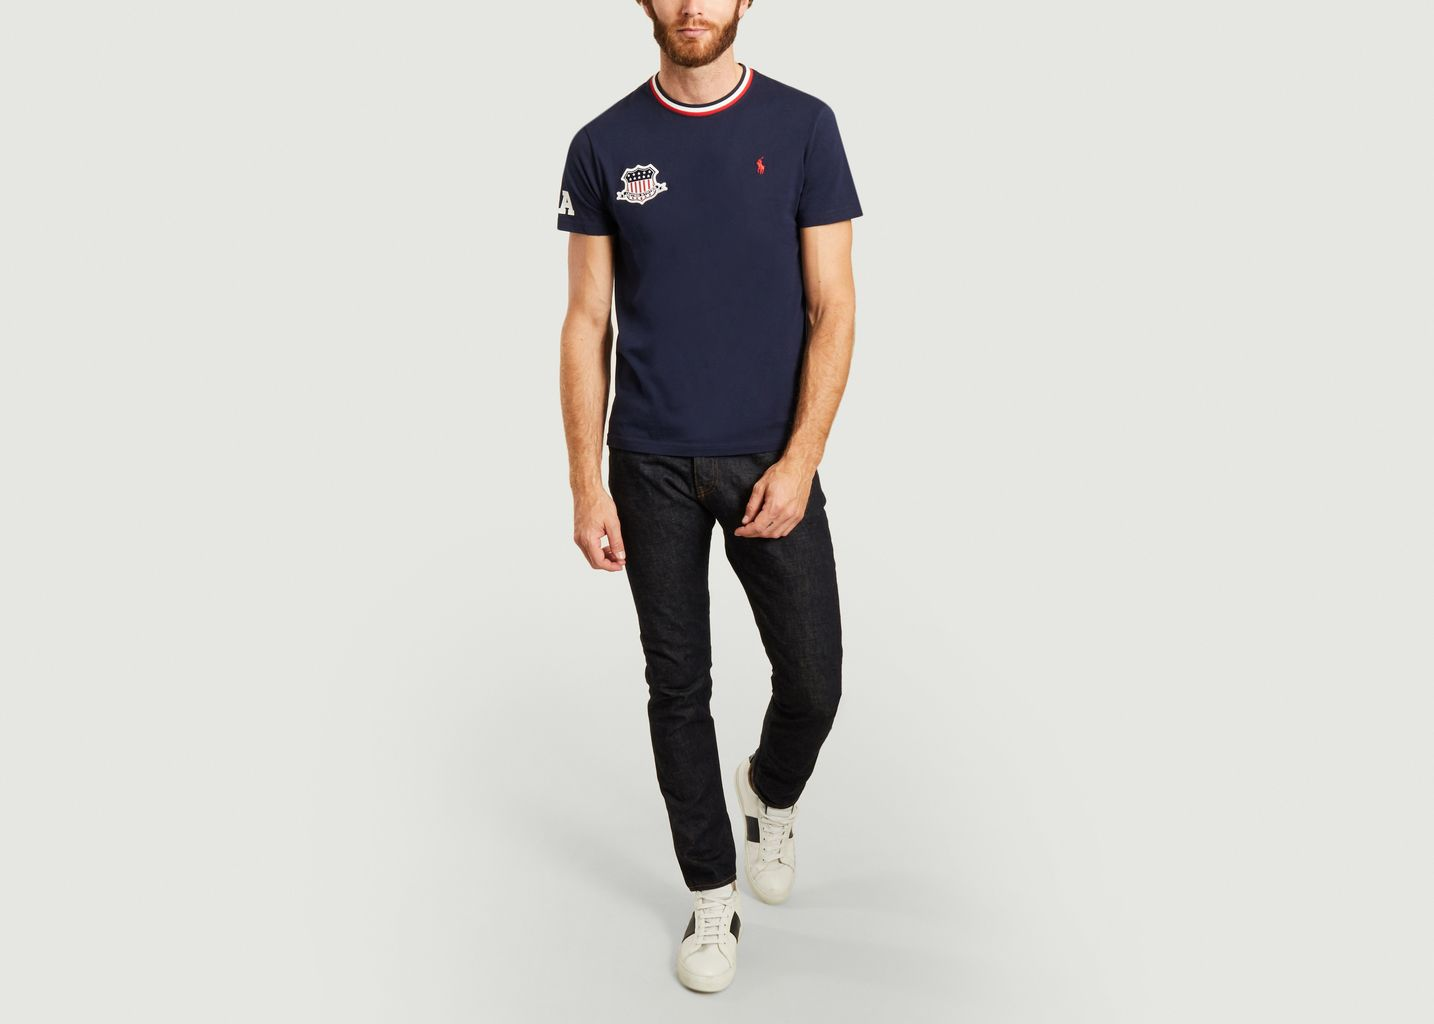 Le T-shirt USA coupe ajustée - Polo Ralph Lauren